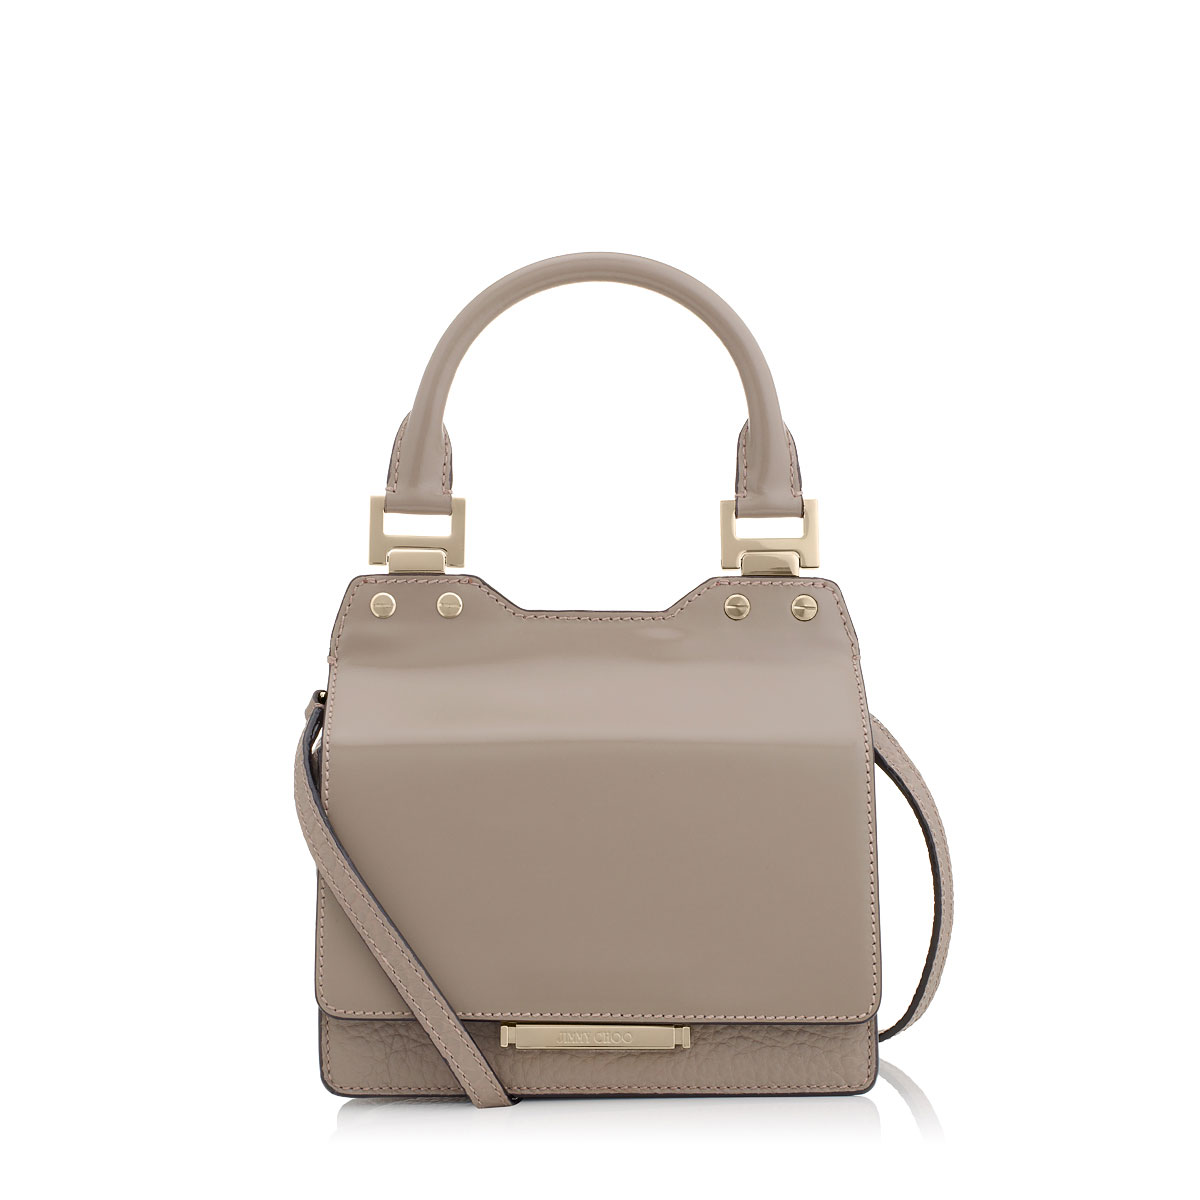 AMIE S Musk Spazzolato and Grainy Leather Small Tote Bag